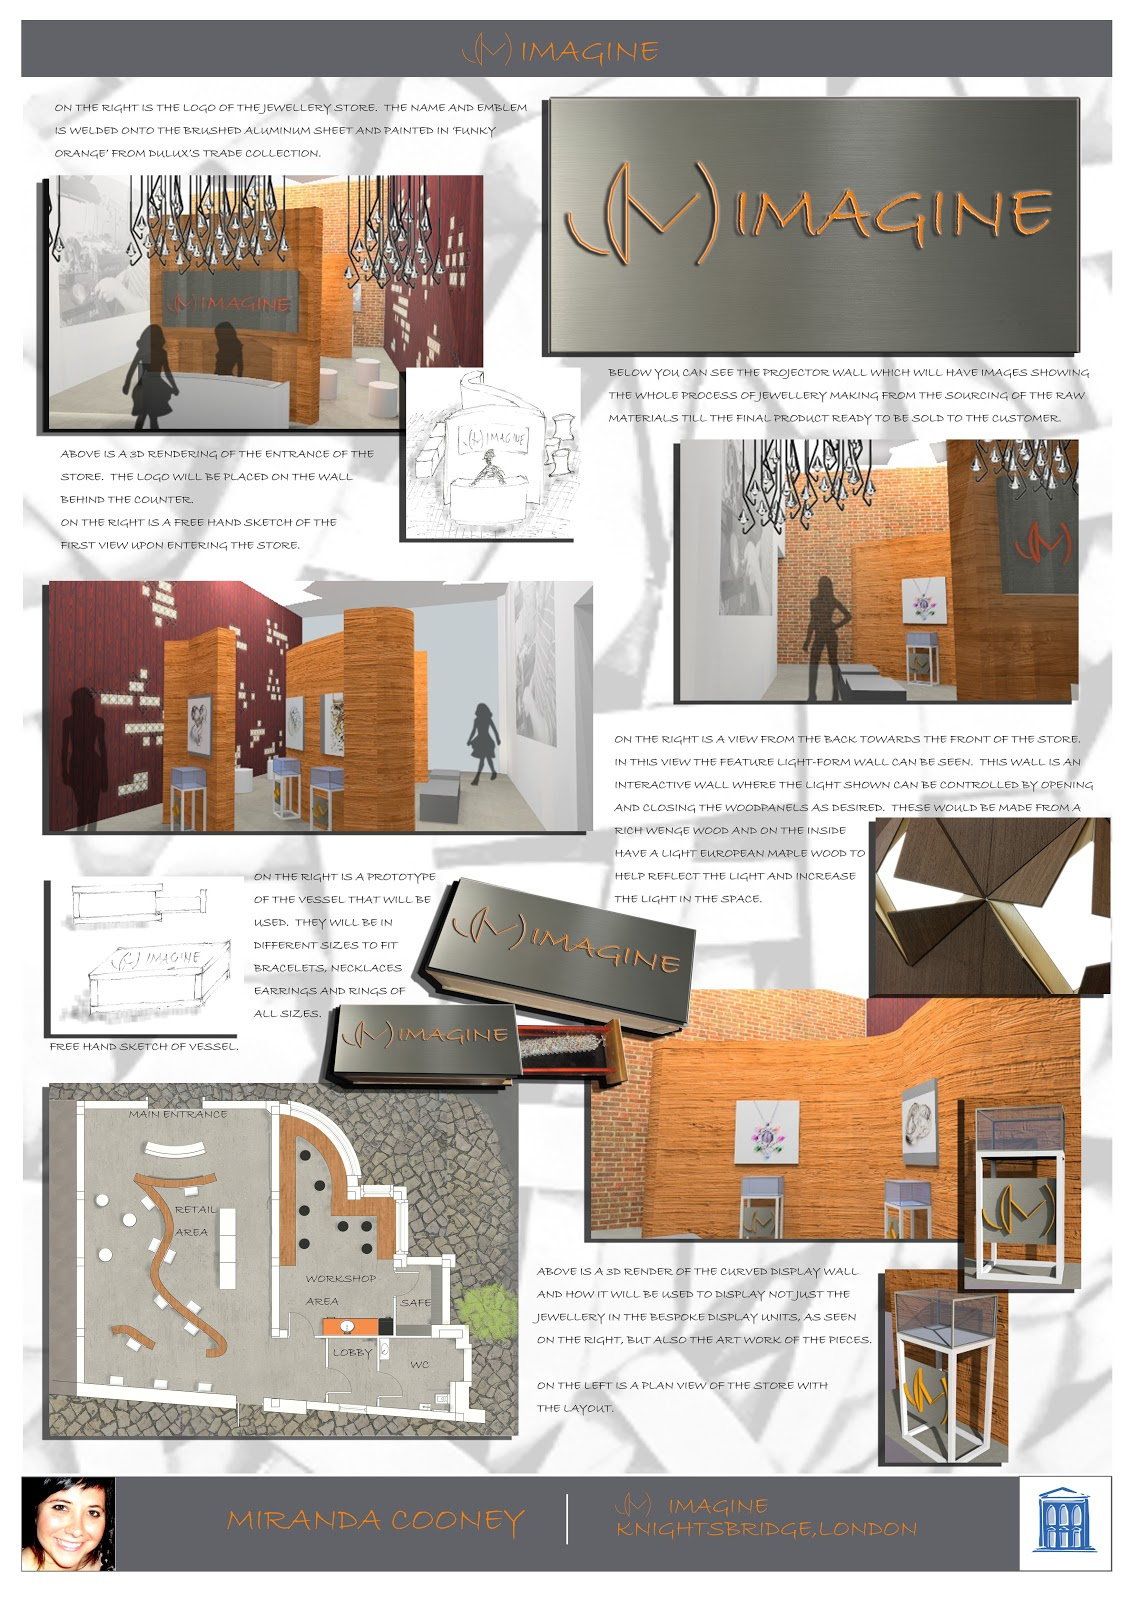 Design At St Johns Interior Architecture Design Students